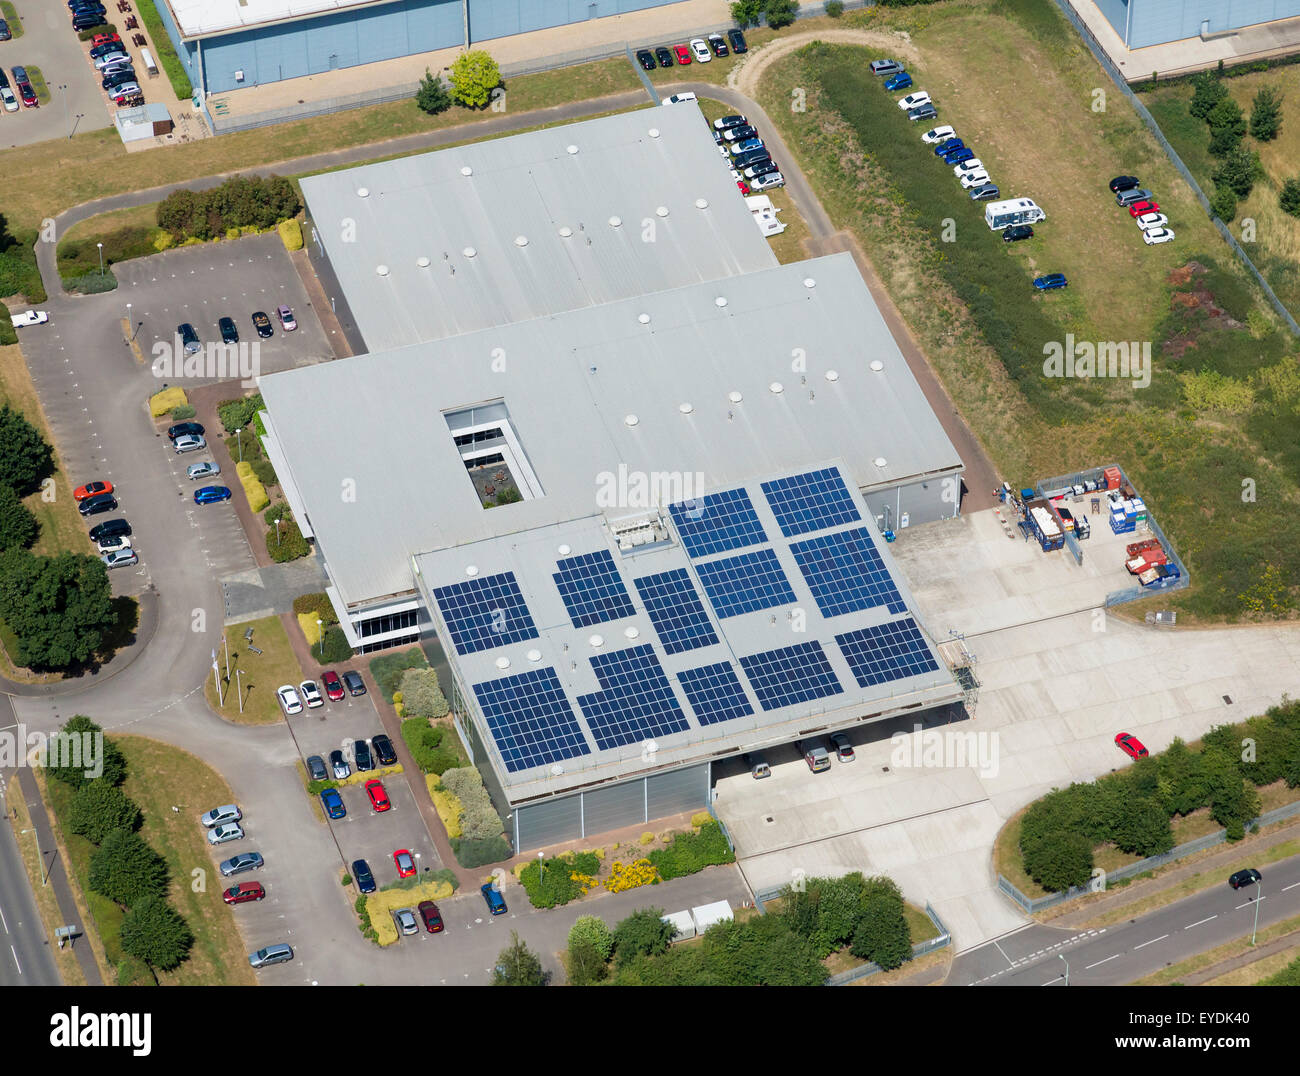 solar photovoltaic panels on a roof in the UK - Stock Image